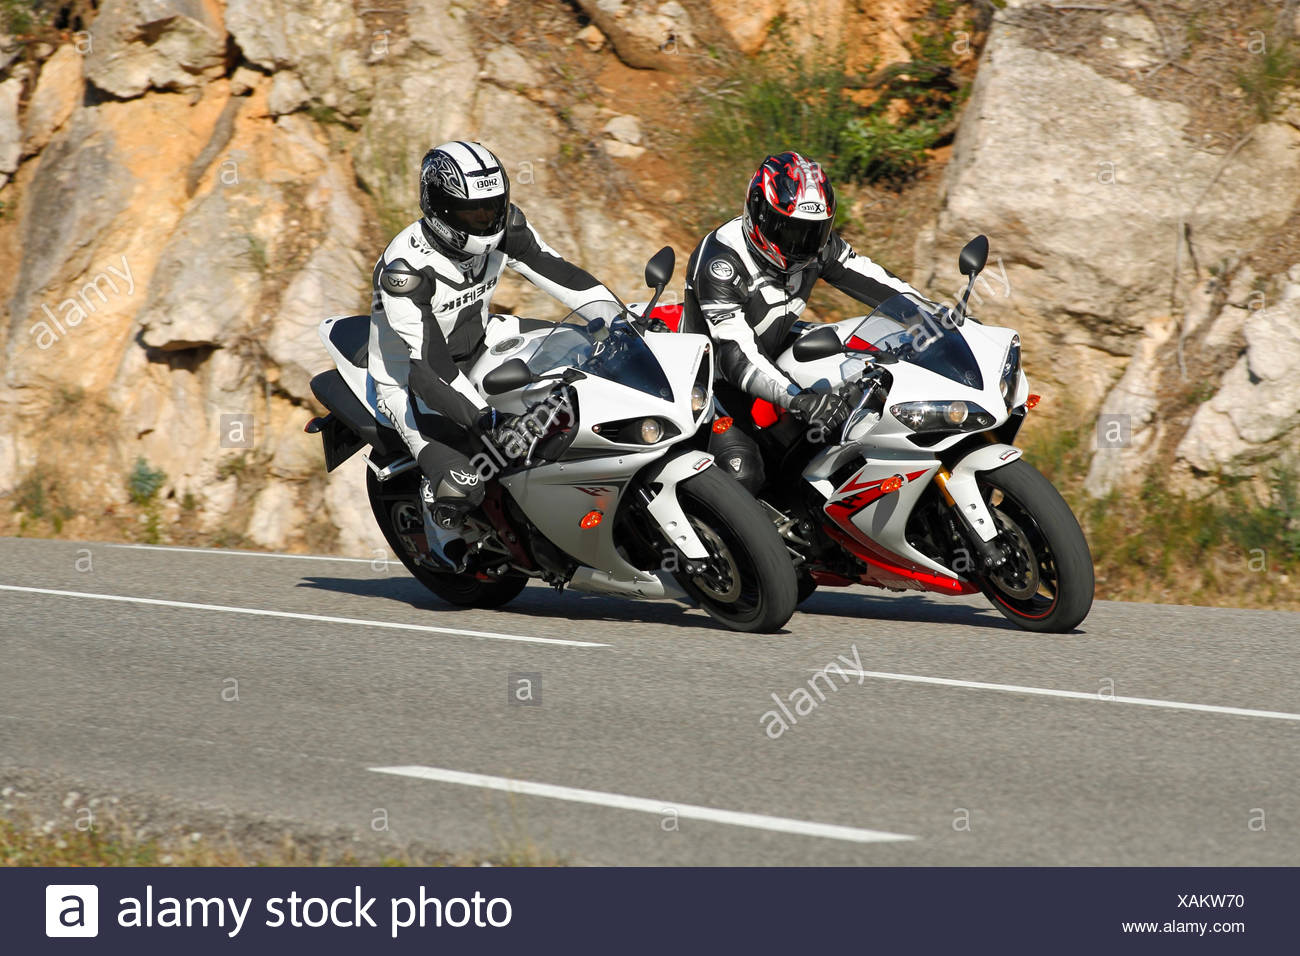 Two Yamaha YZF R1 motorcycles - Stock Image